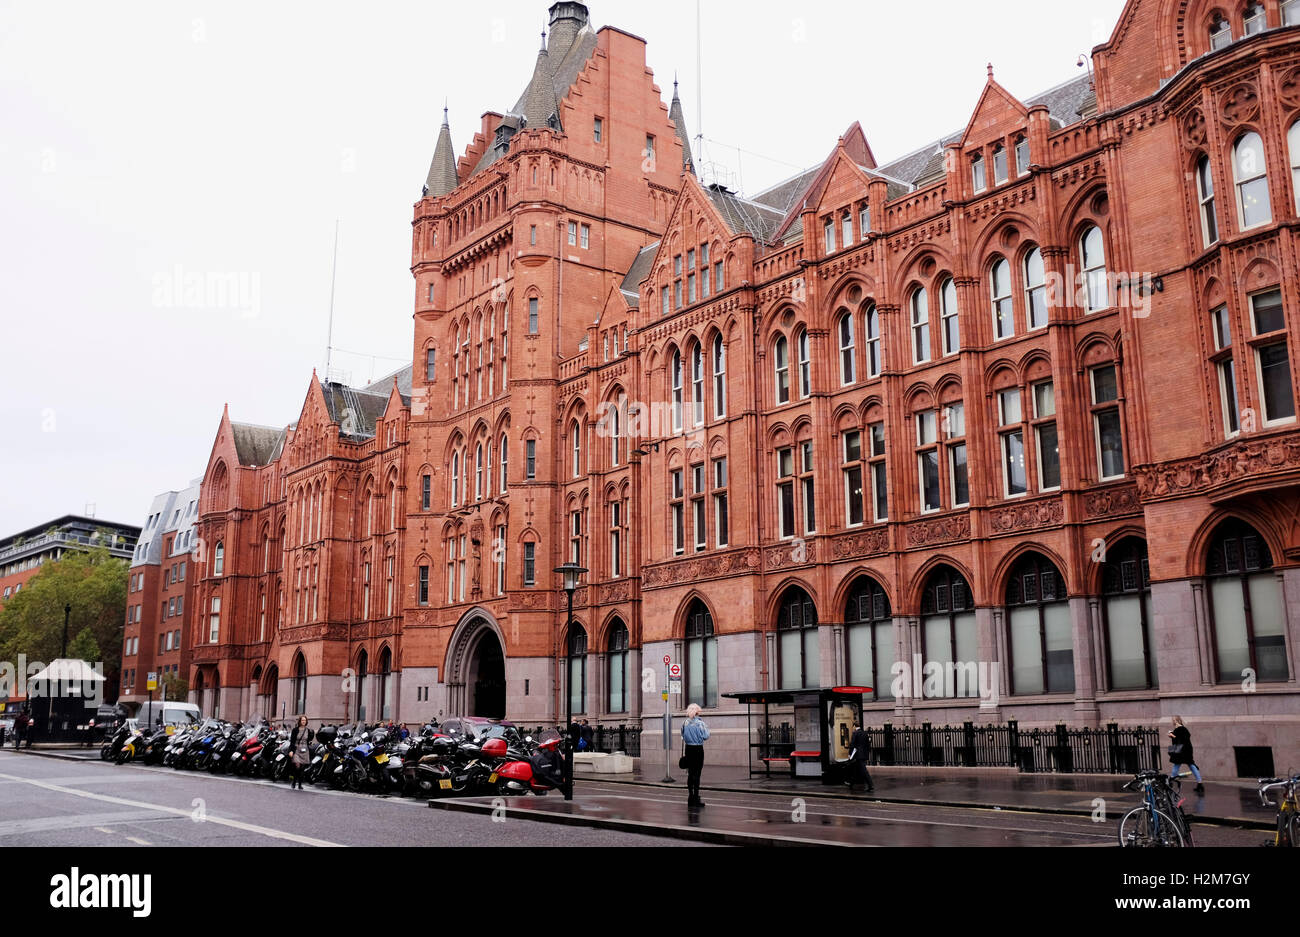 Holborn Bars Events Venue In High London And Formerly Prudential Assurance Company HQ UK